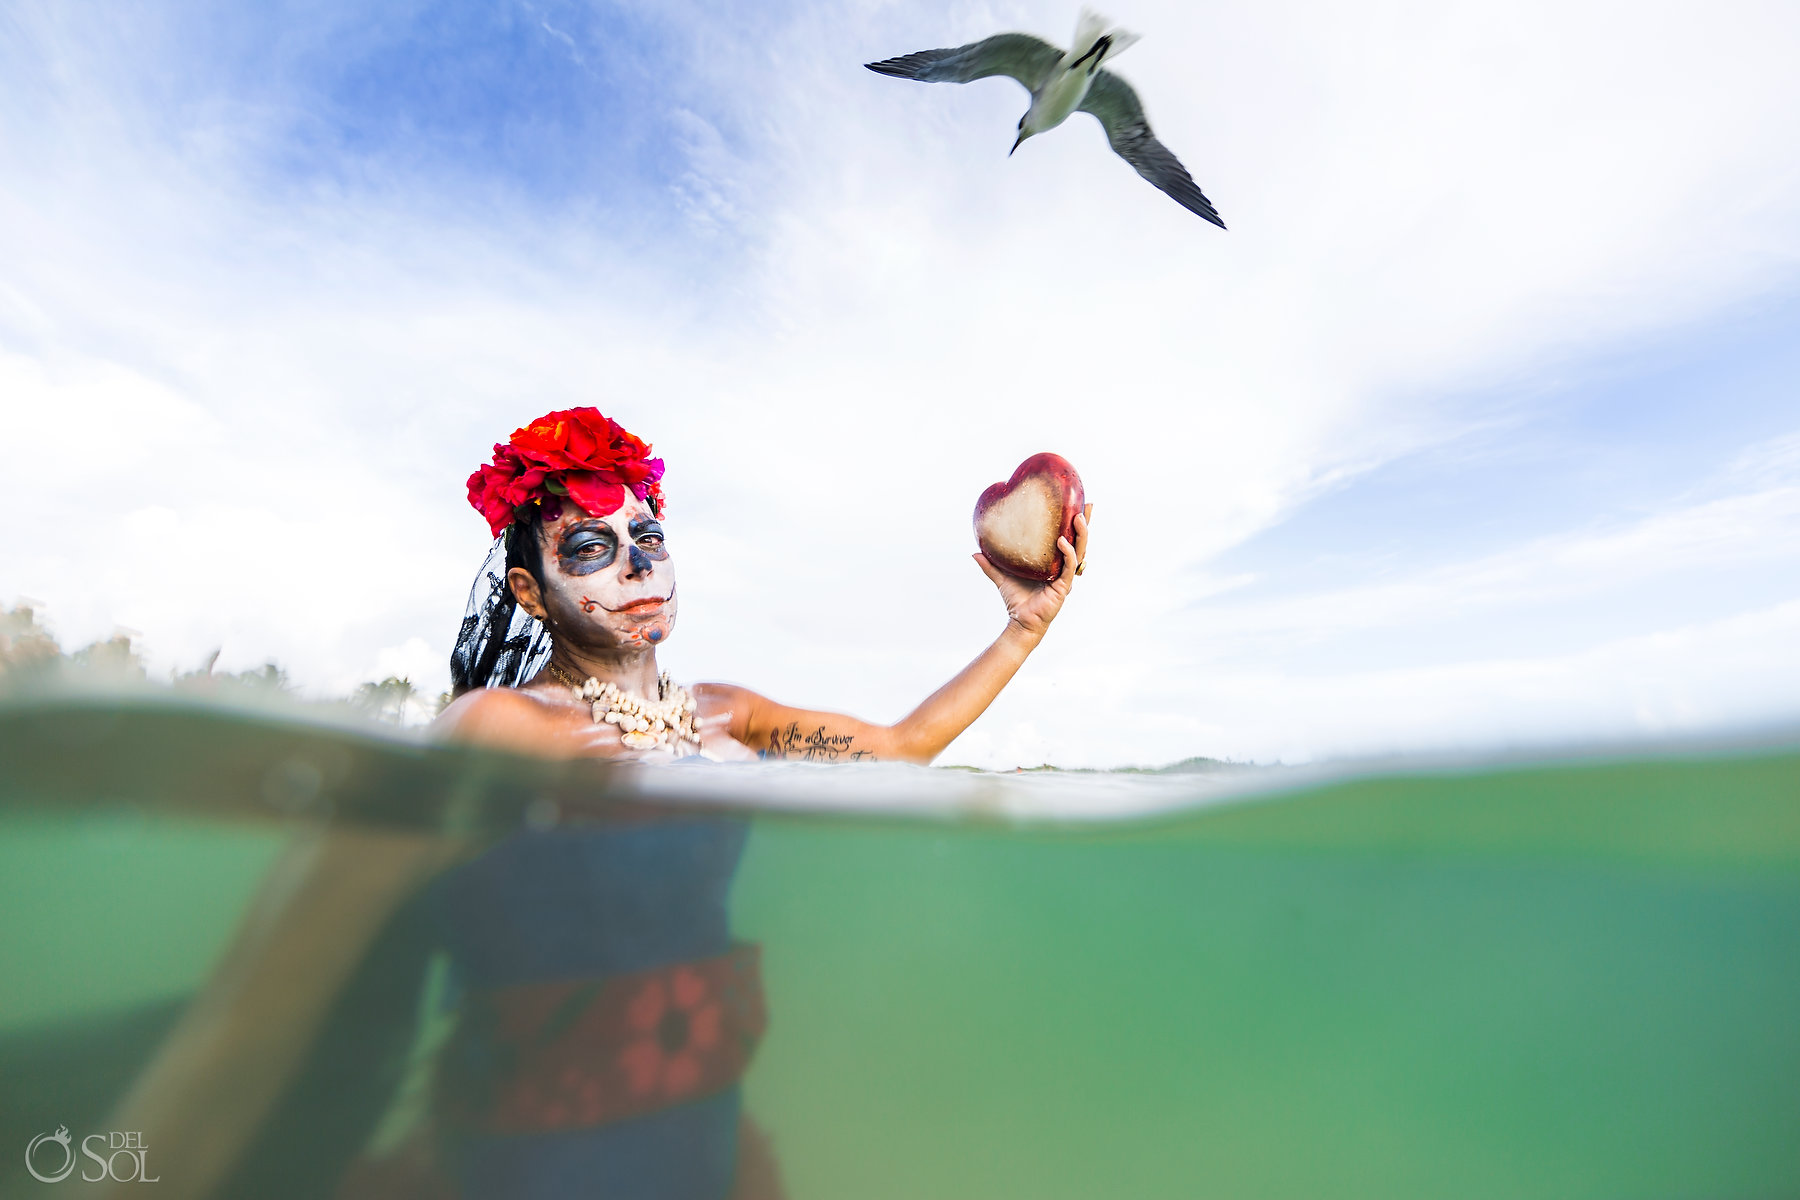 Underwater Photography Subaquatic Photo Catrina Makeup Red Flower Arrangement Seagull flight